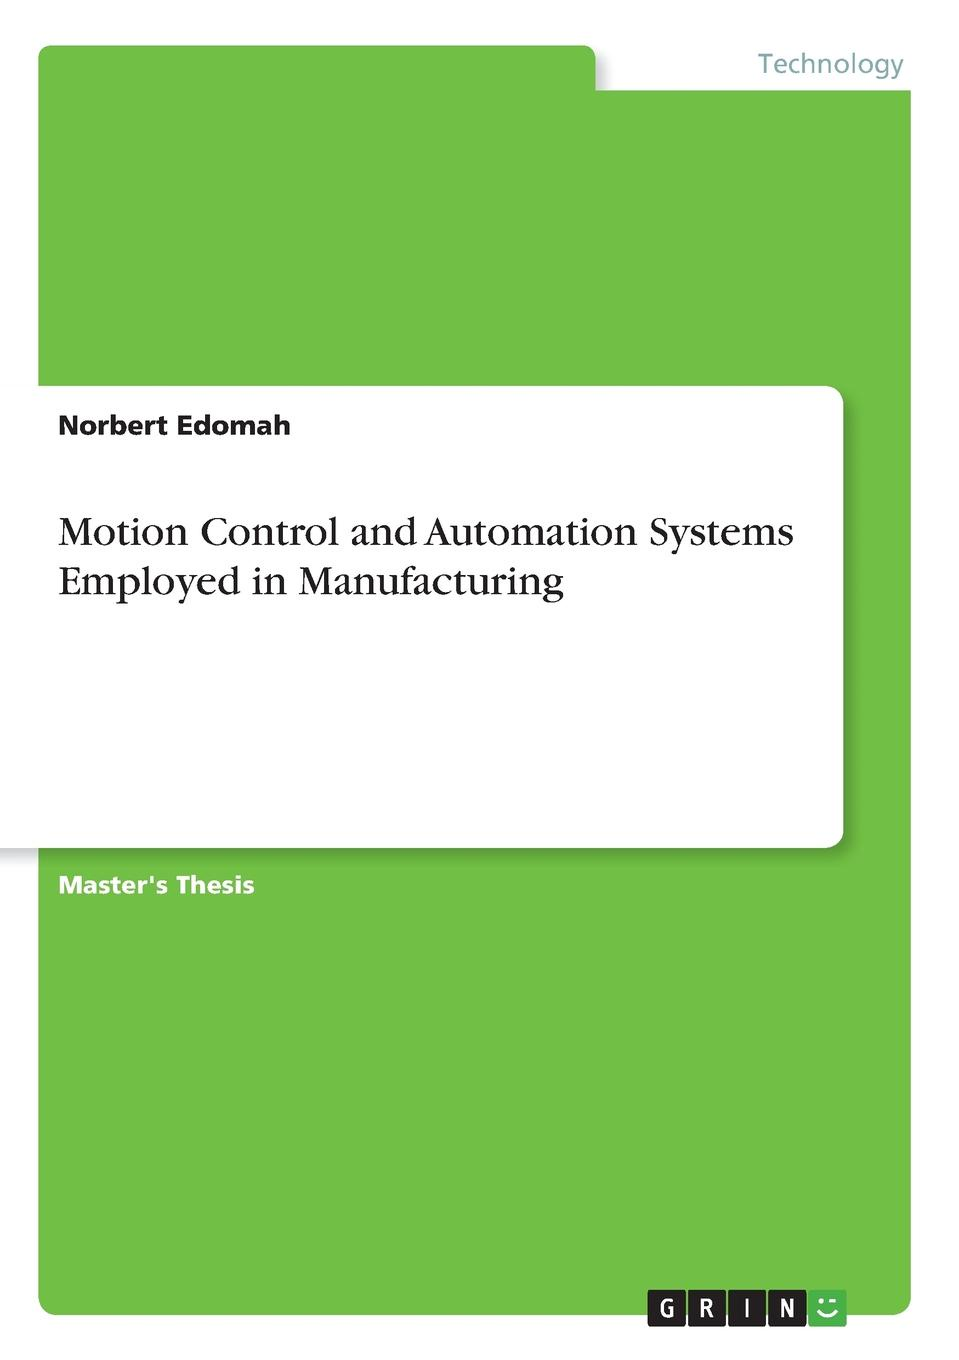 Norbert Edomah Motion Control and Automation Systems Employed in Manufacturing thor fossen i handbook of marine craft hydrodynamics and motion control